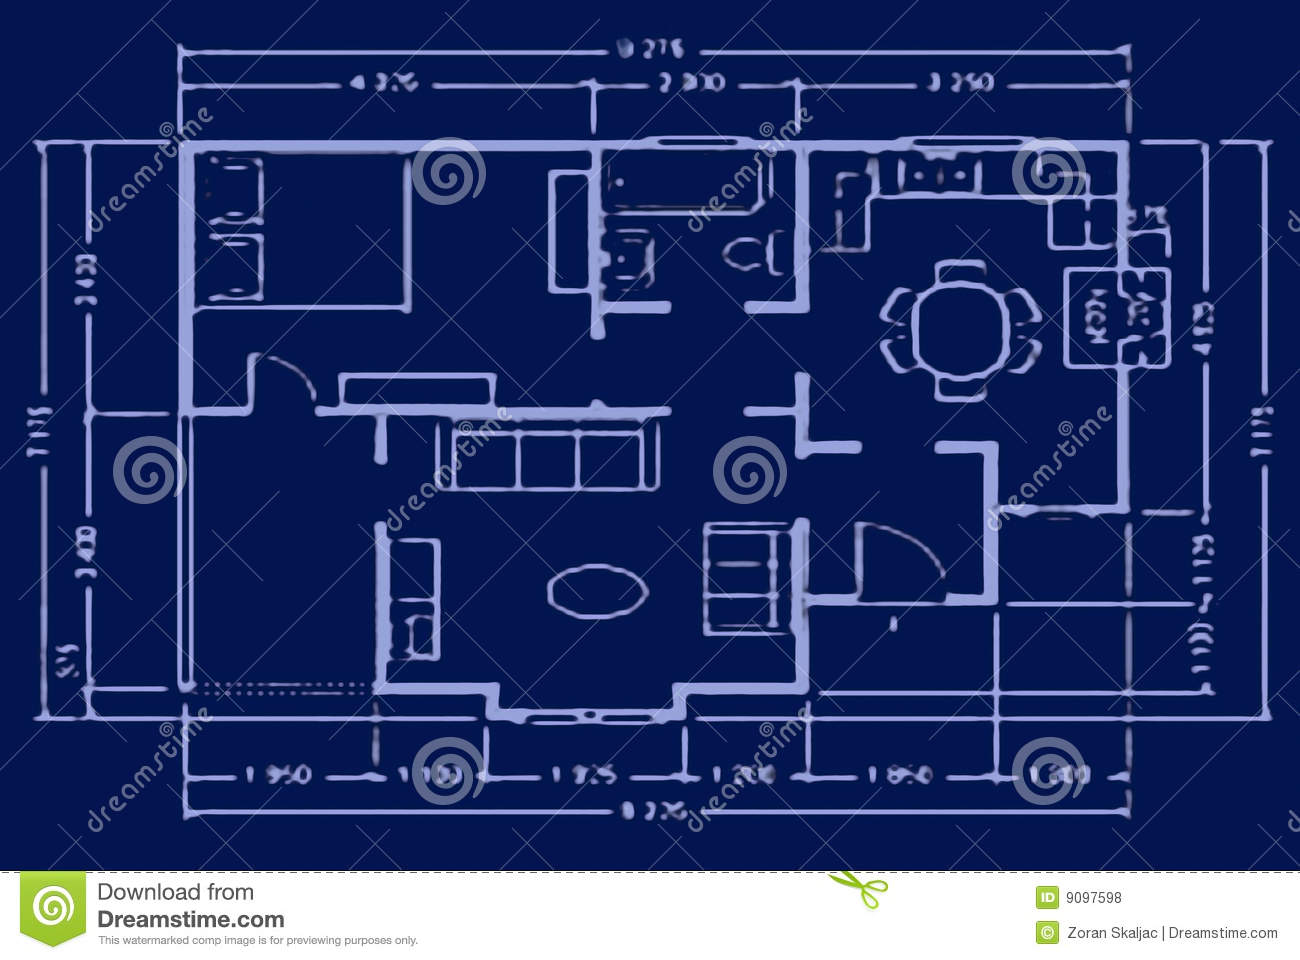 Http Www Dreamstime Com Royalty Free Stock Photos Blueprint House Plan Image9097598